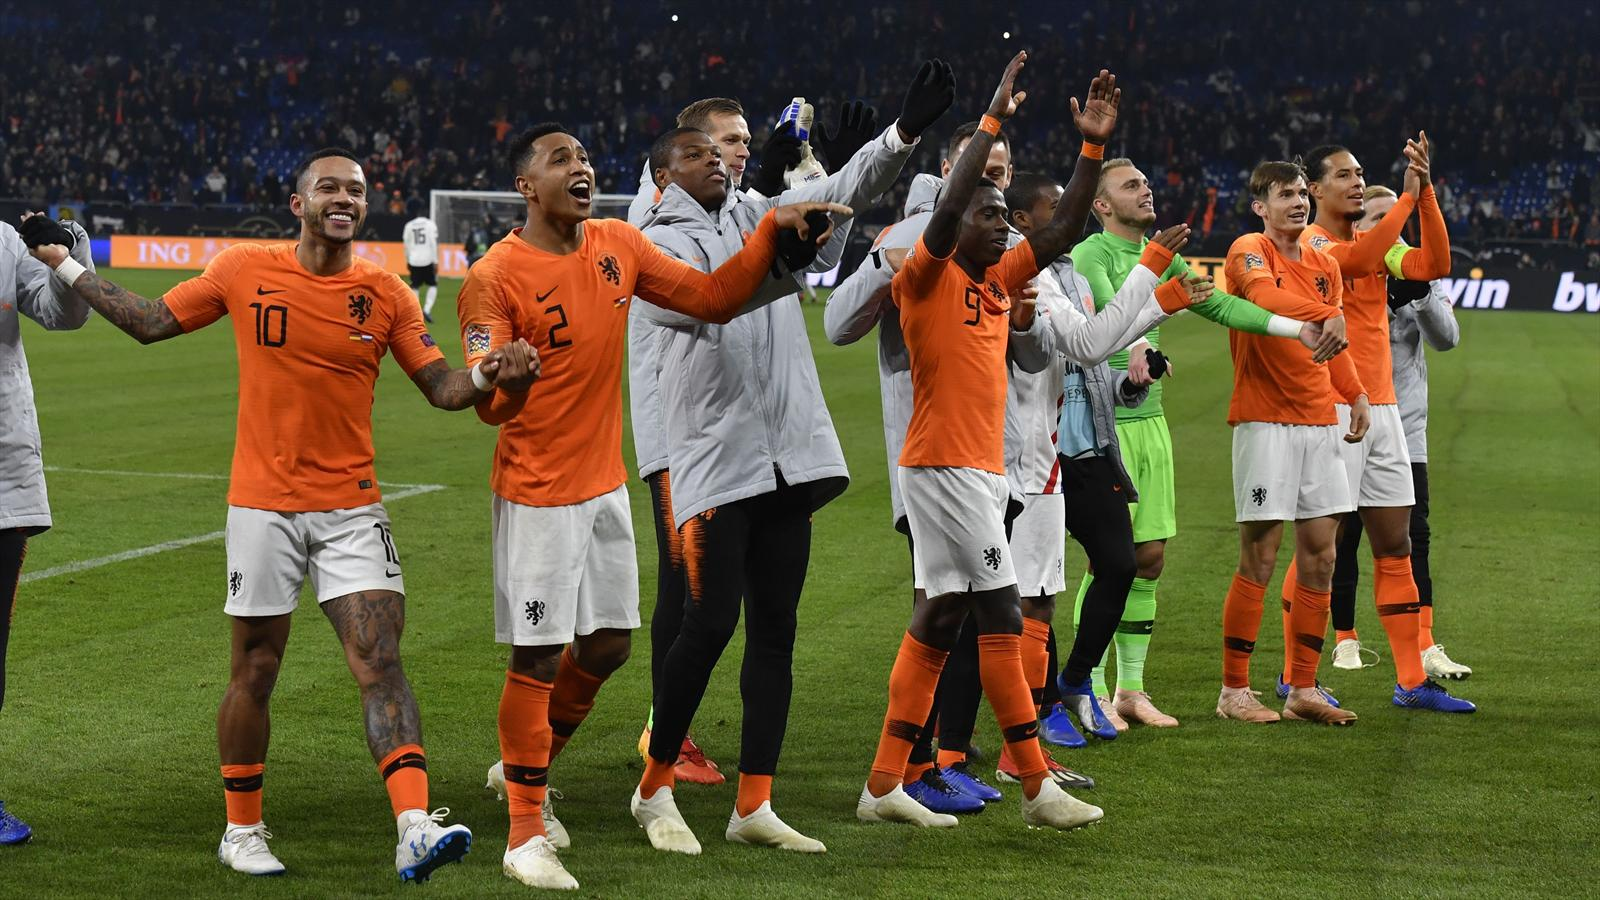 Football news - 'Nations League > Everything' - Fans react ...